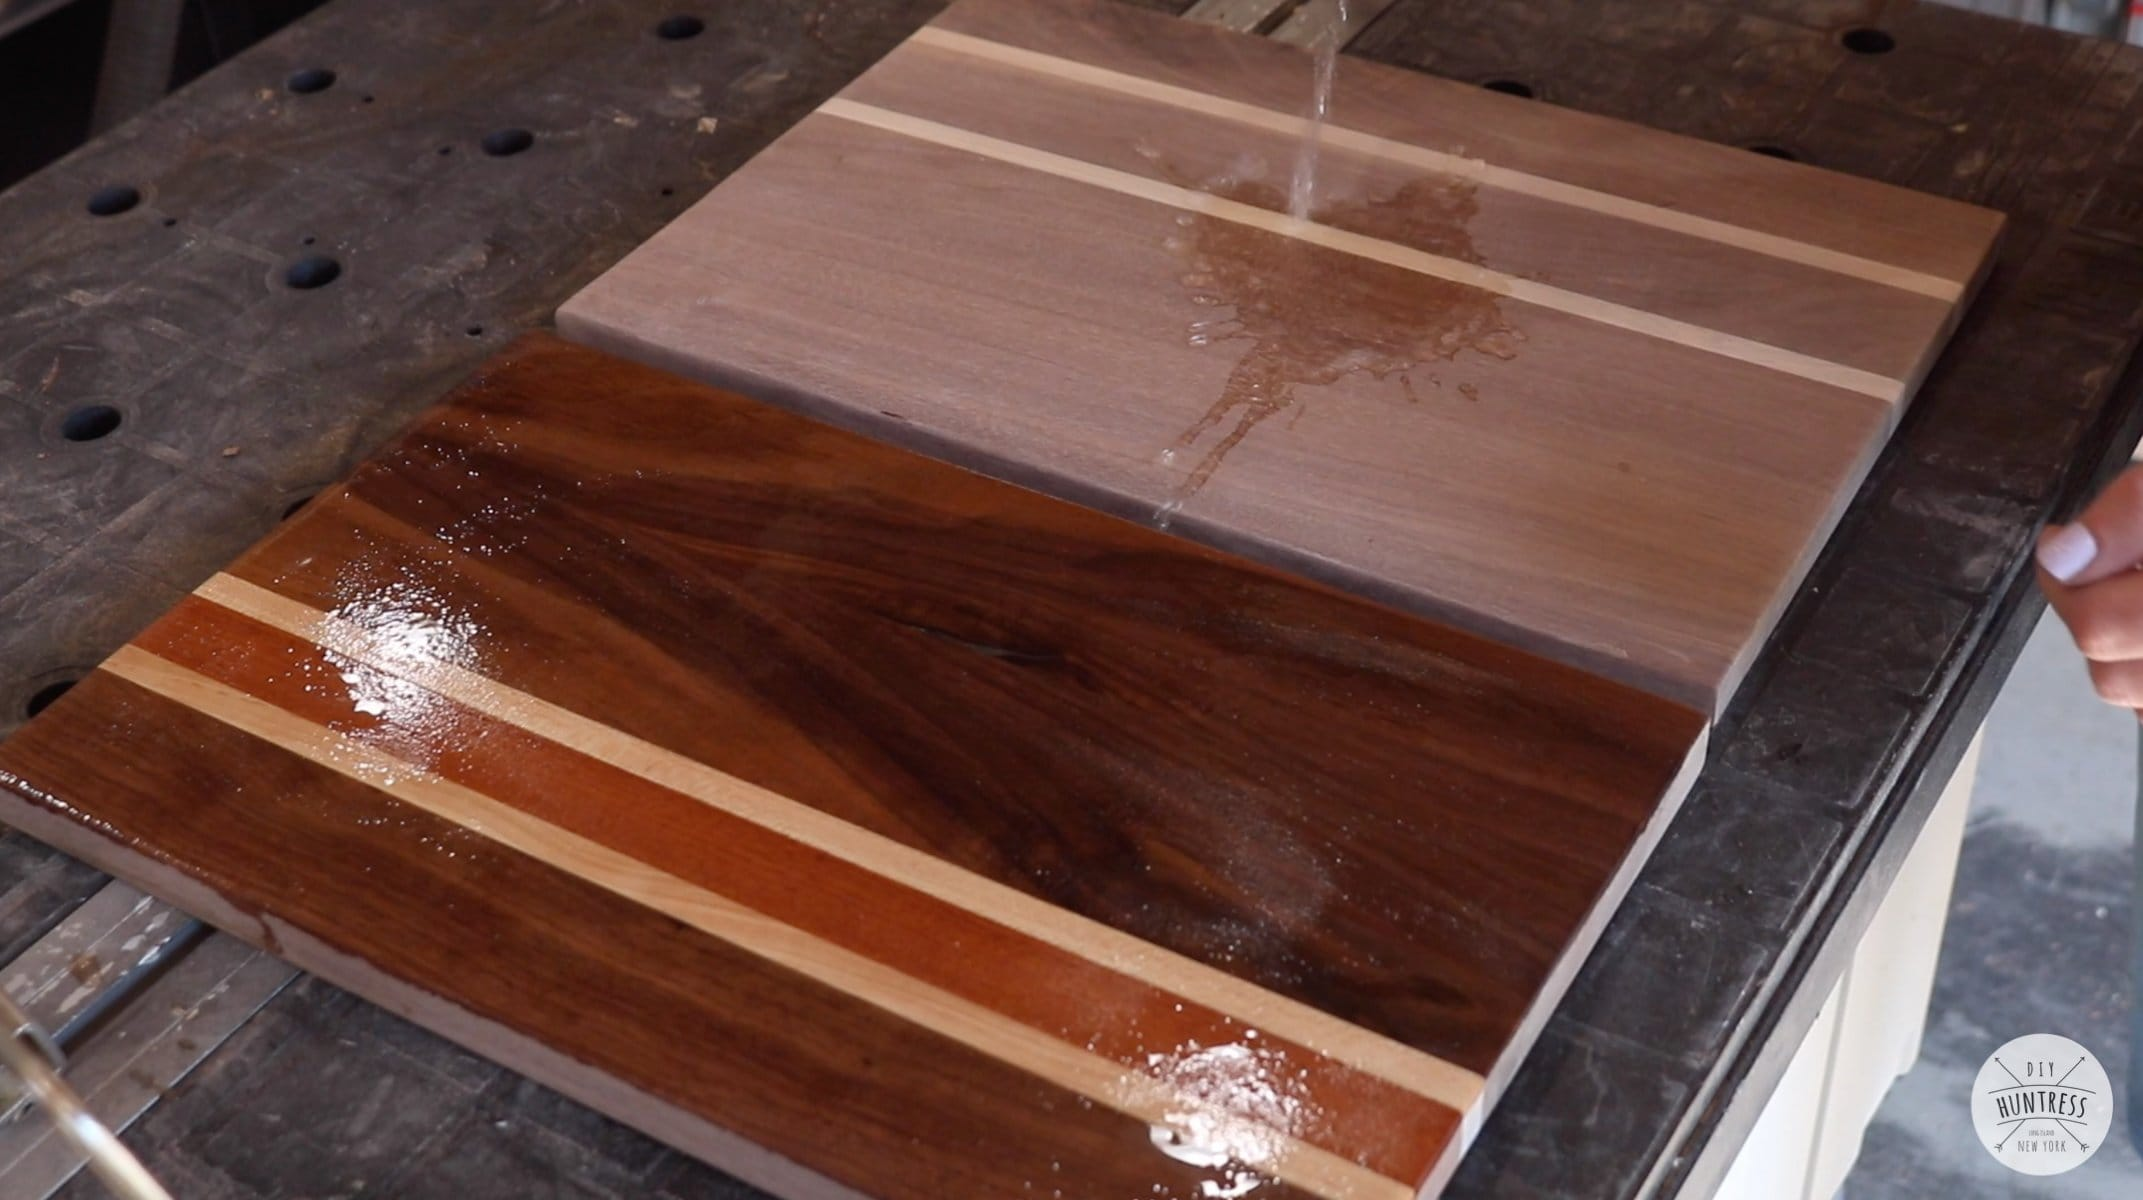 how to raise grain on cutting board